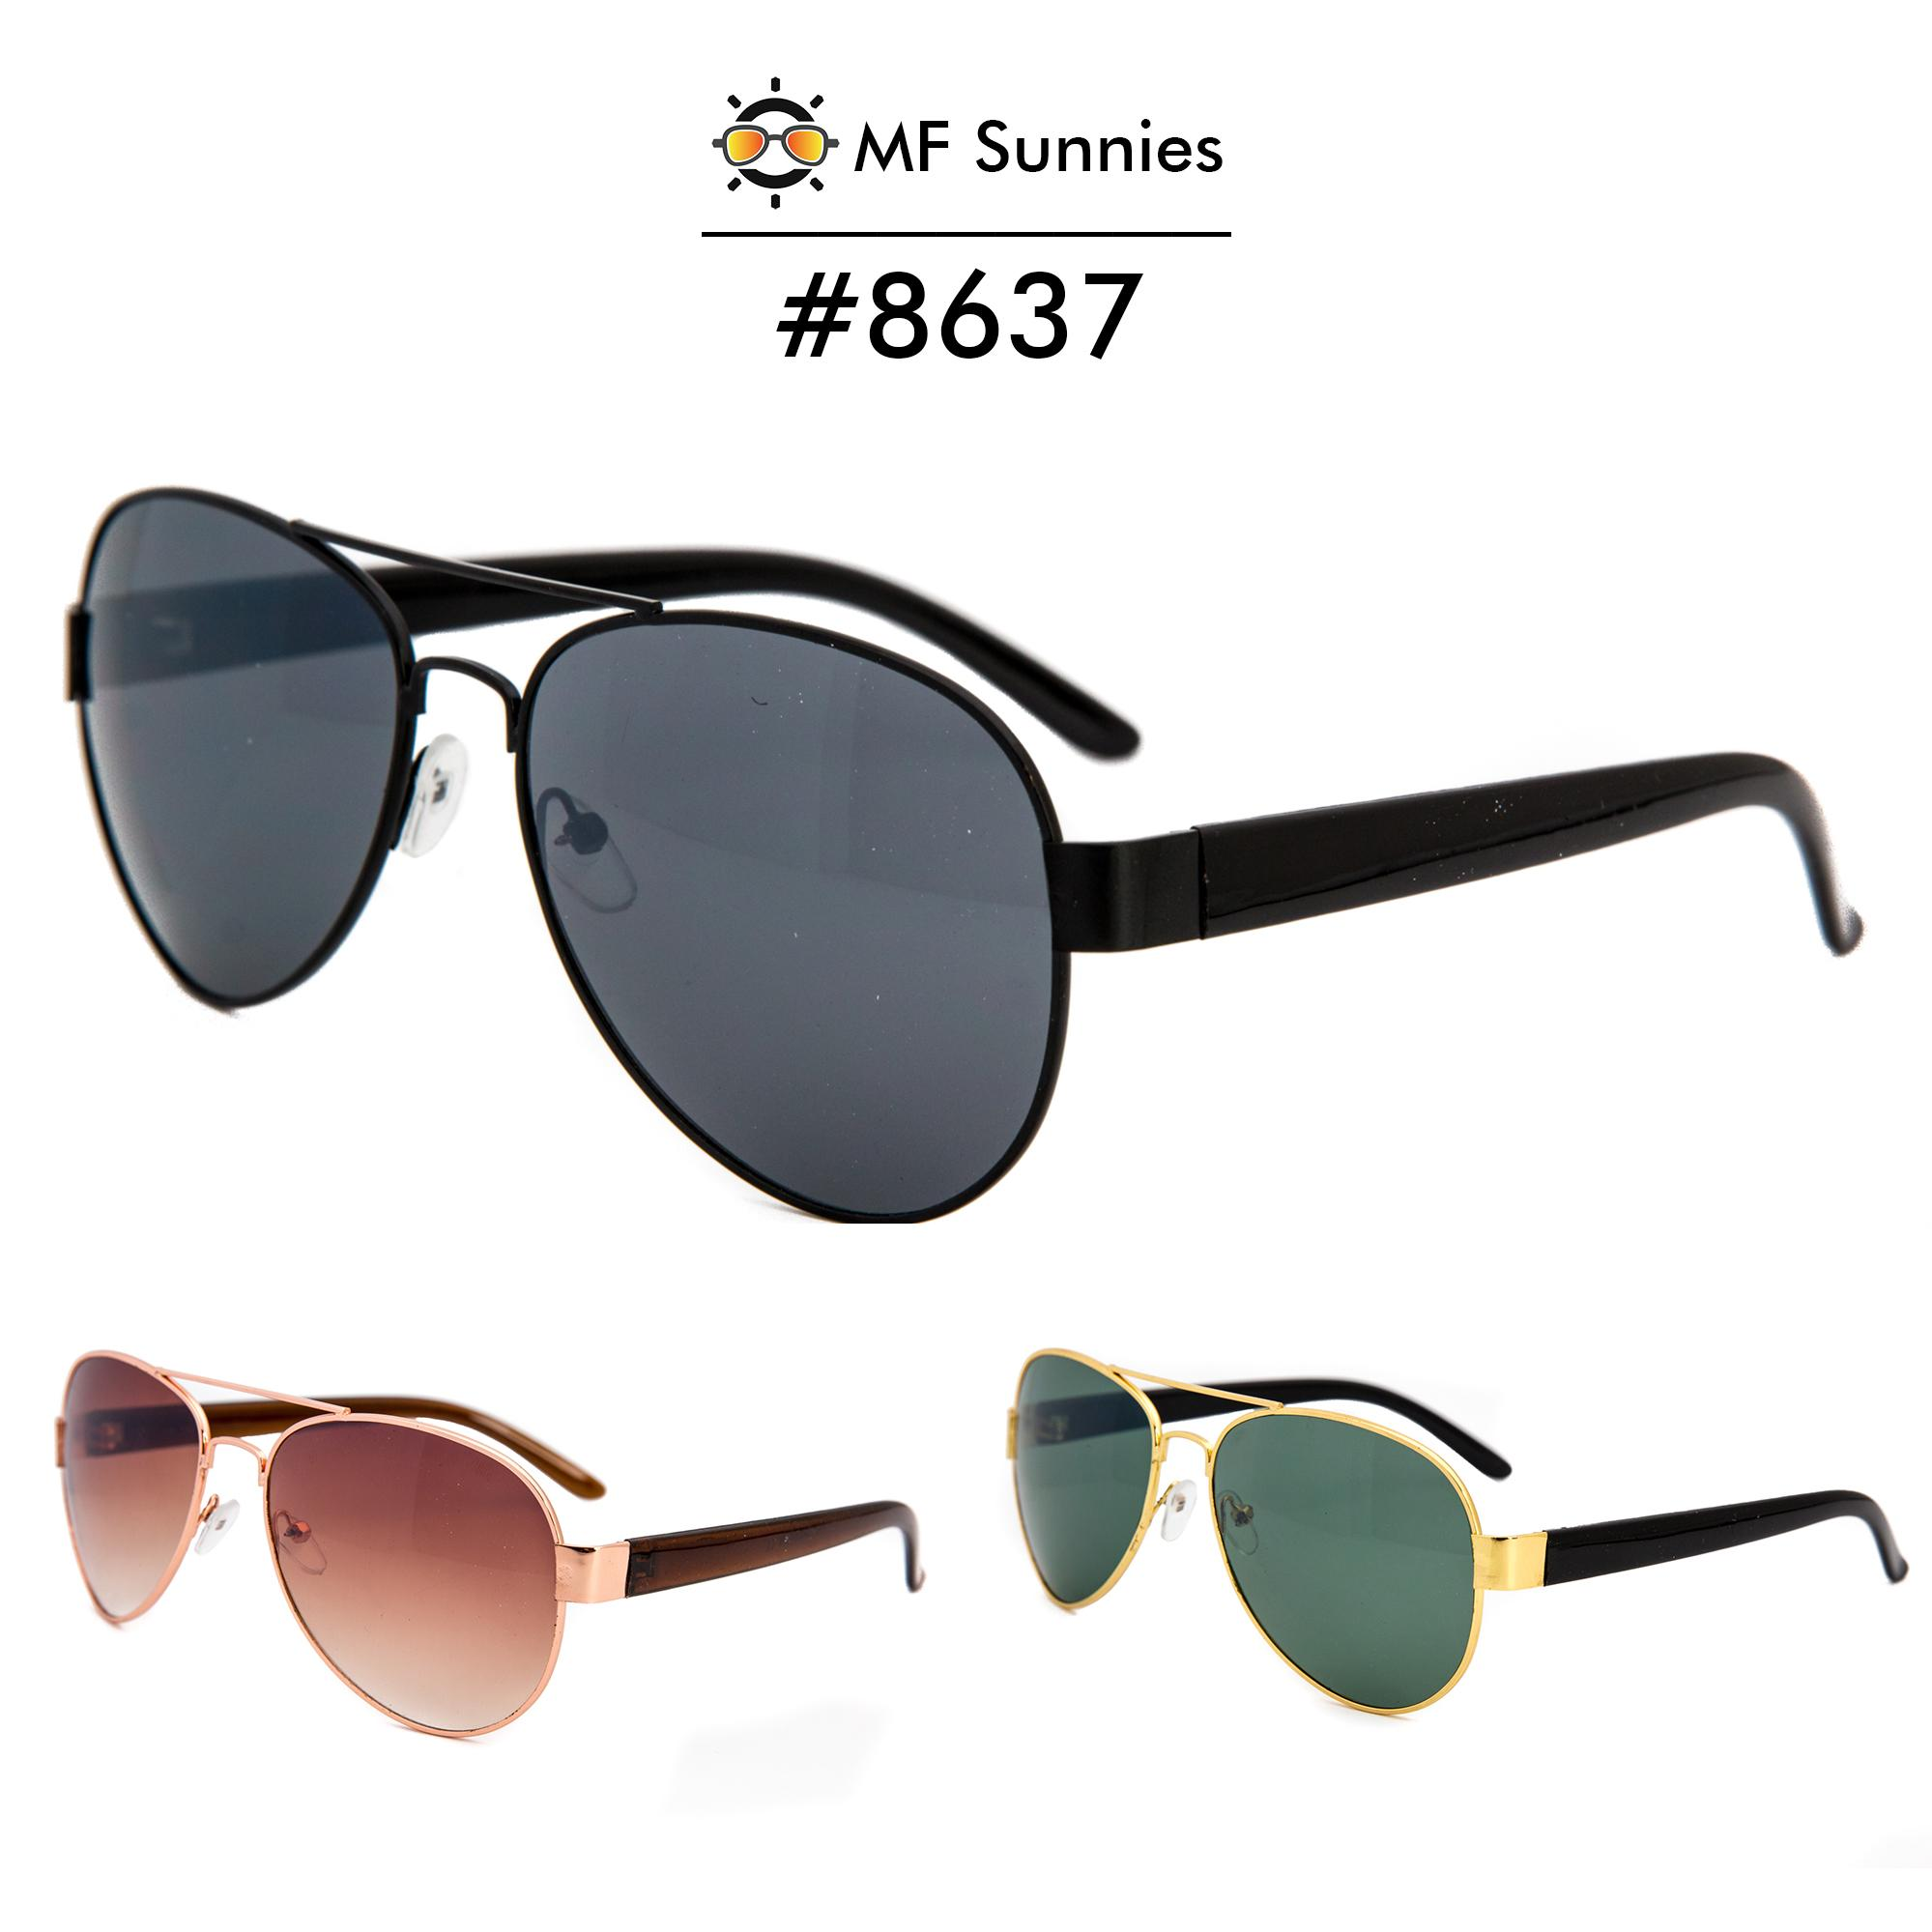 33e8d7befed7 MFSunnies Classic Aviator Sunglass Metal Frame Fashion Eyewear  8637